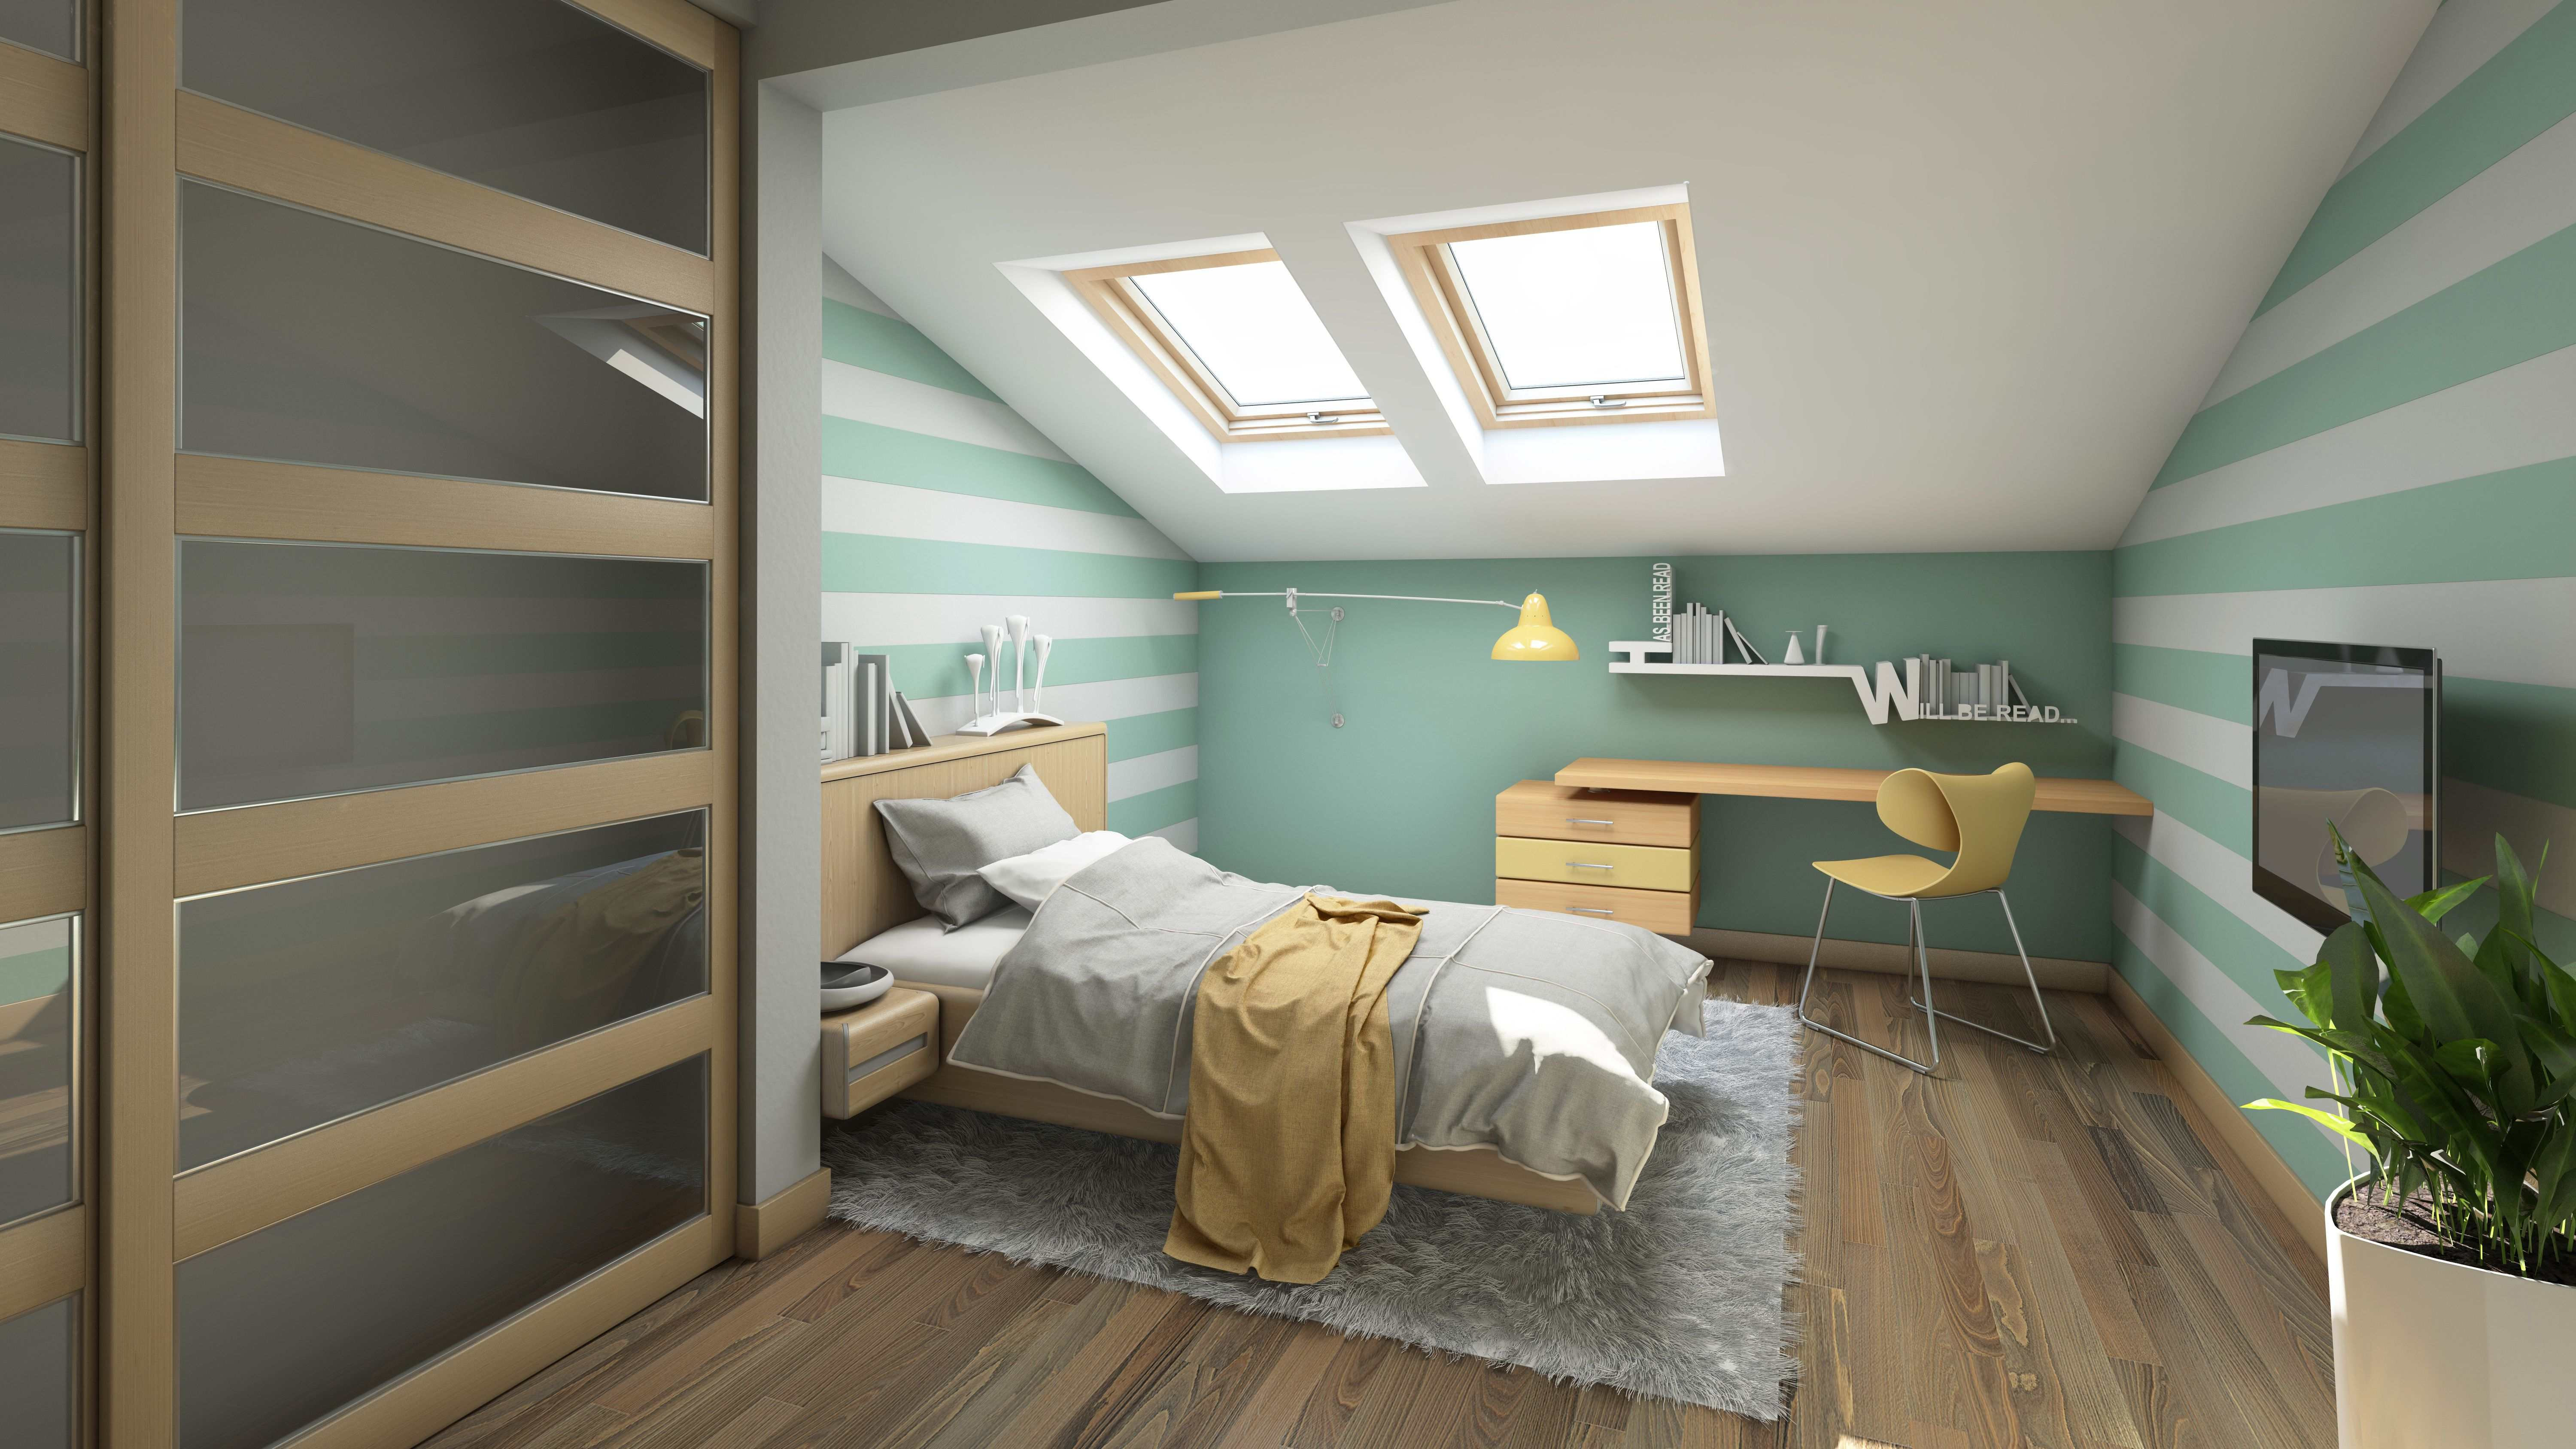 How to convert an attic into a bedroom